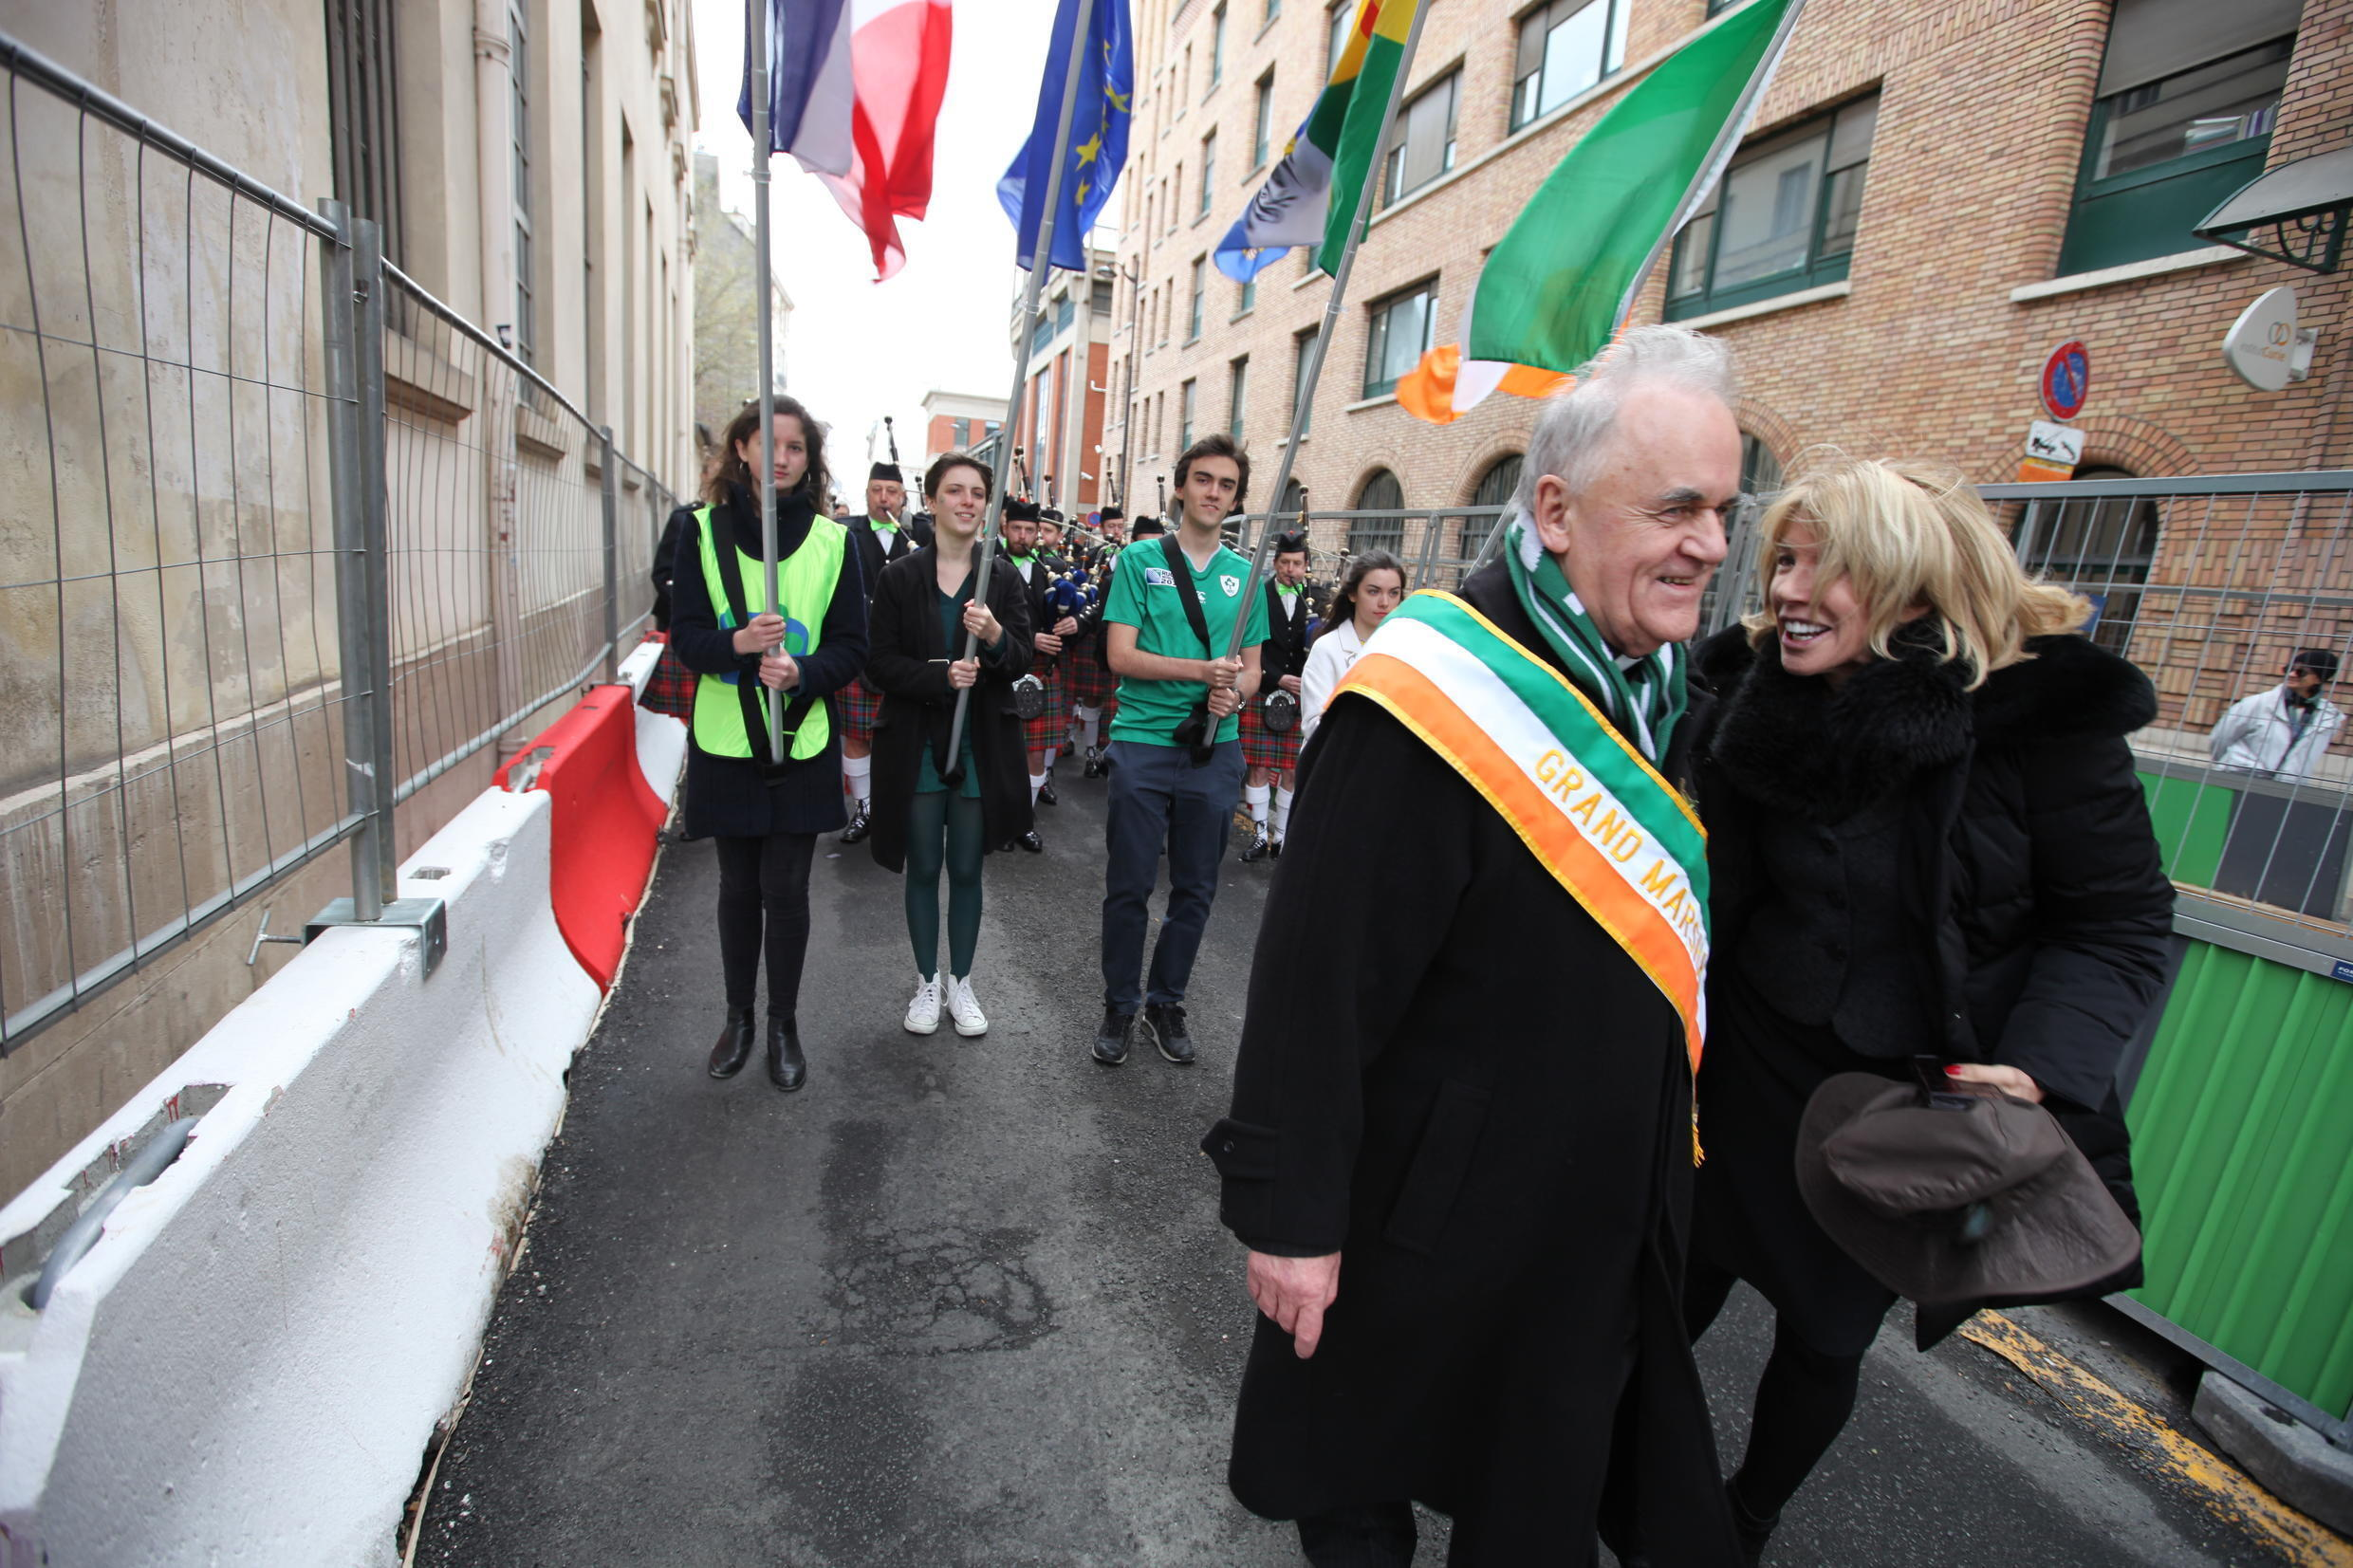 The procession finally begins! The Grand Marshal leads the parade, briefly crossing with Patricia O'Brien, Irish Ambassador to France.